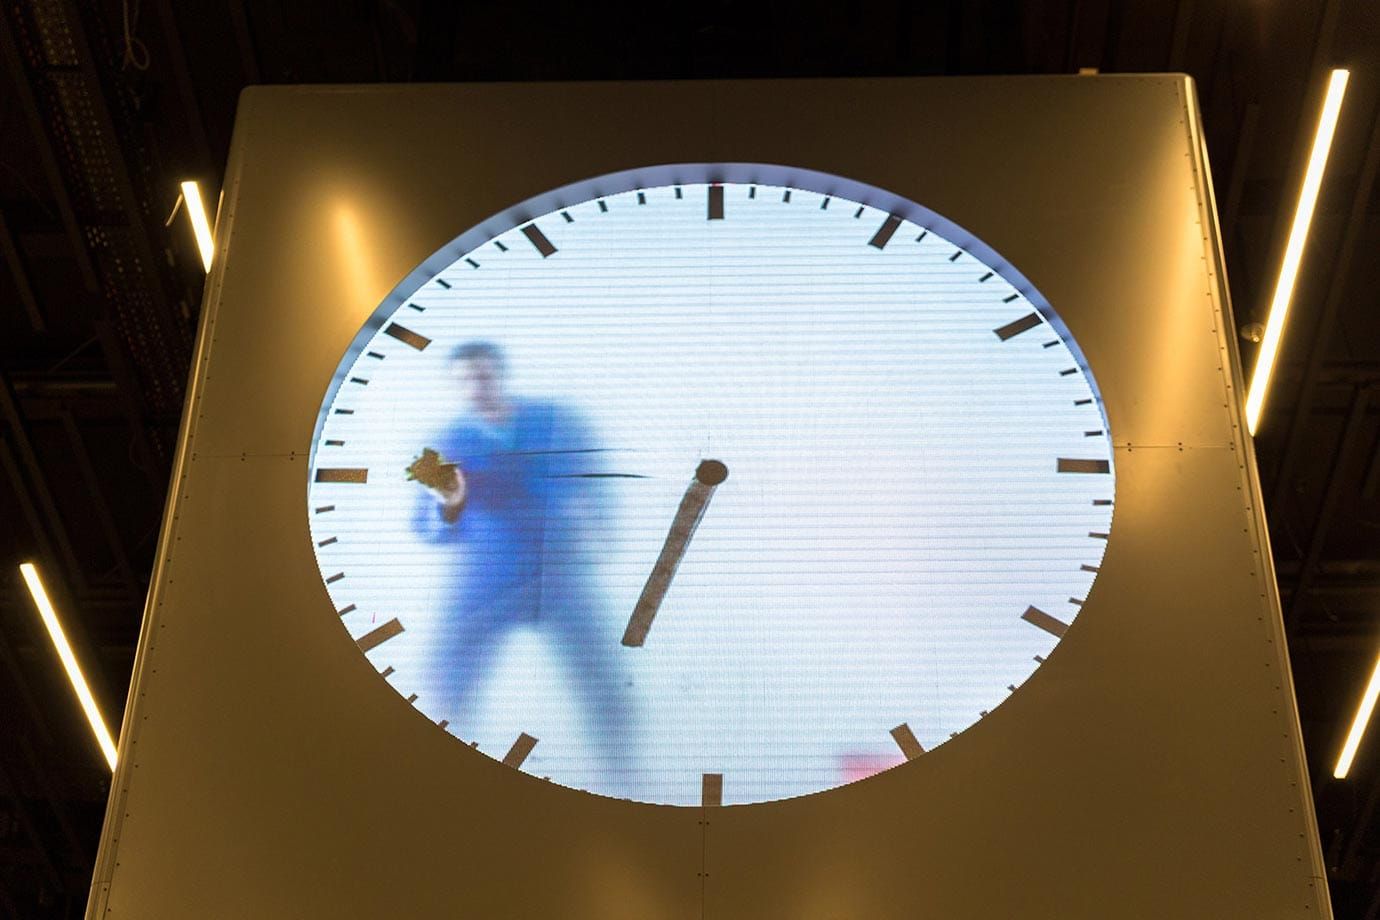 Man in the clock at Schiphol Airport